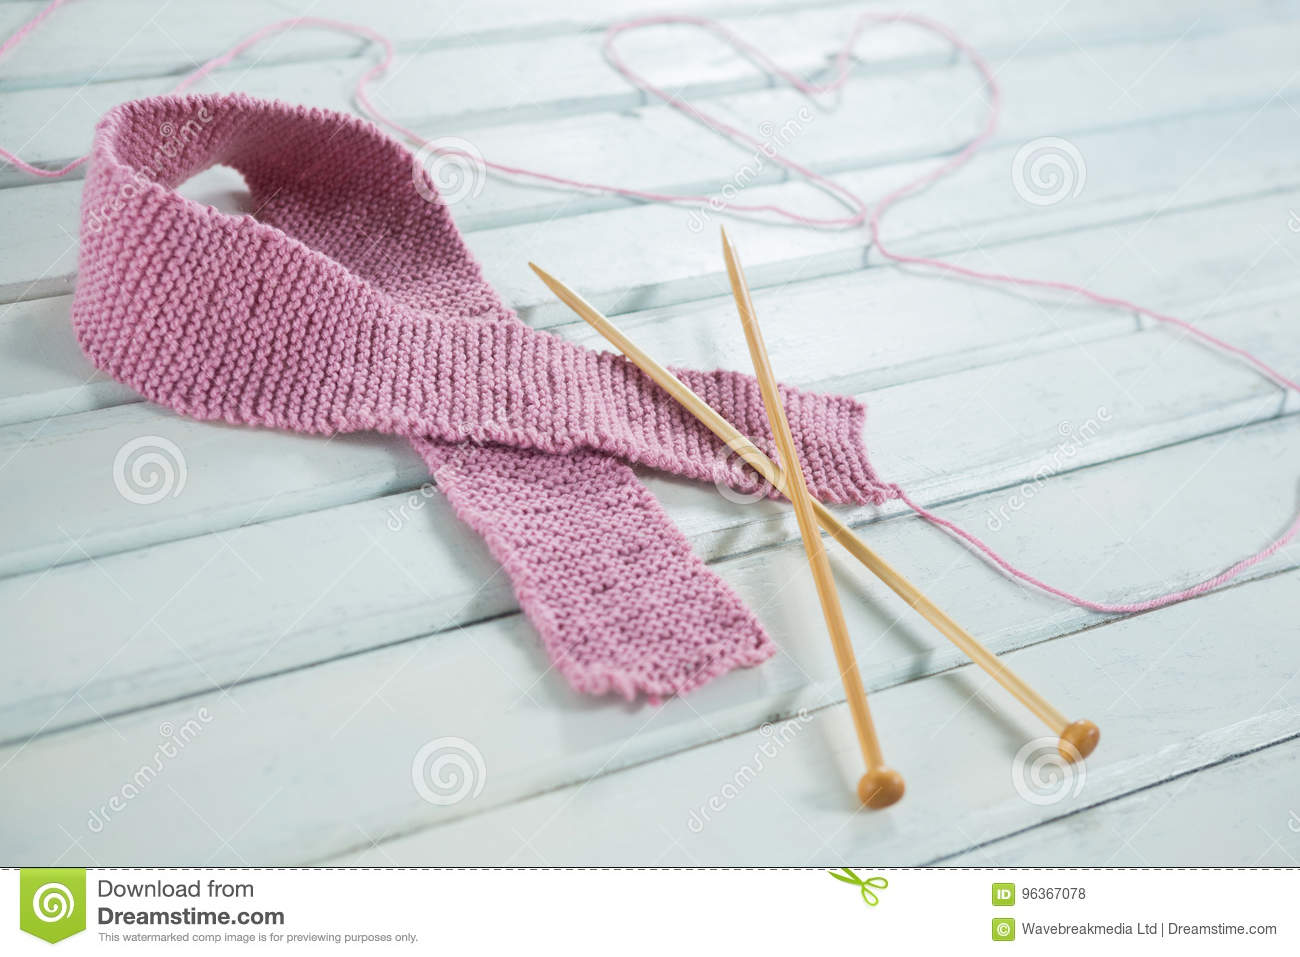 for cancer awareness Knitting breast needles